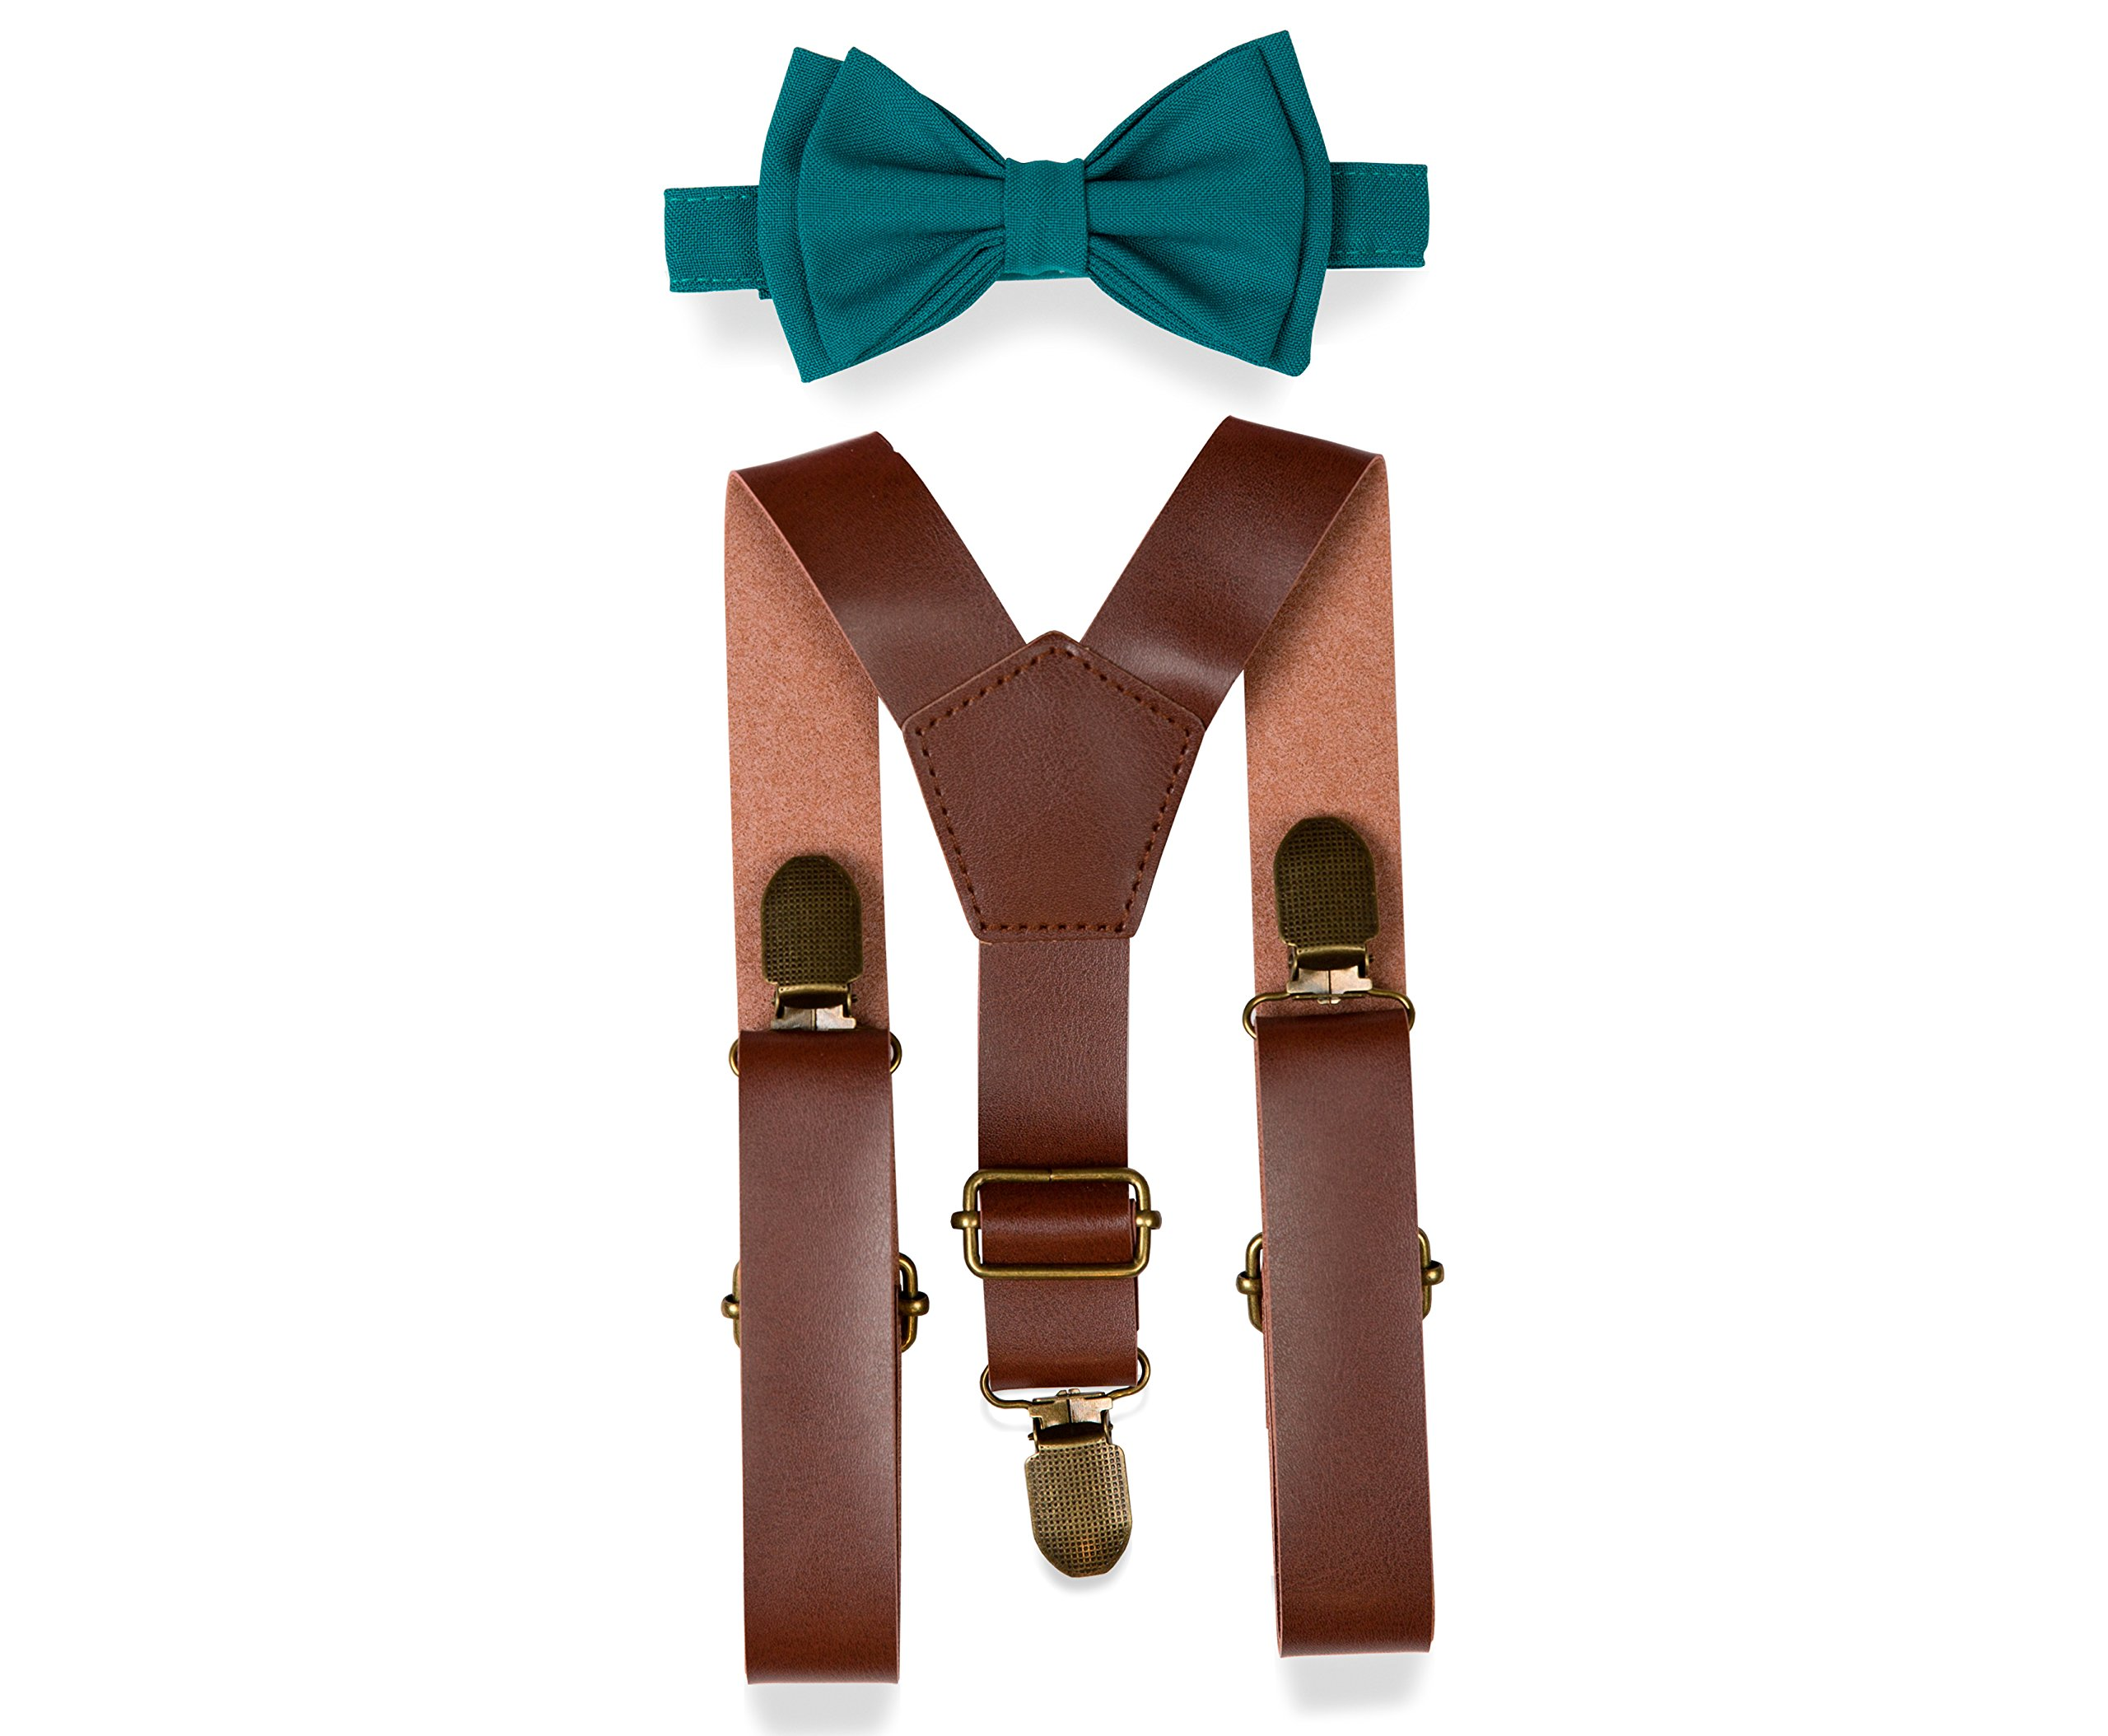 Brown PU Leather Suspenders Bow Tie Combo for Baby Toddler Boy Men (2. Toddler (18 mo - 6 yrs), Brown Leather Suspenders, Teal Bow Tie)